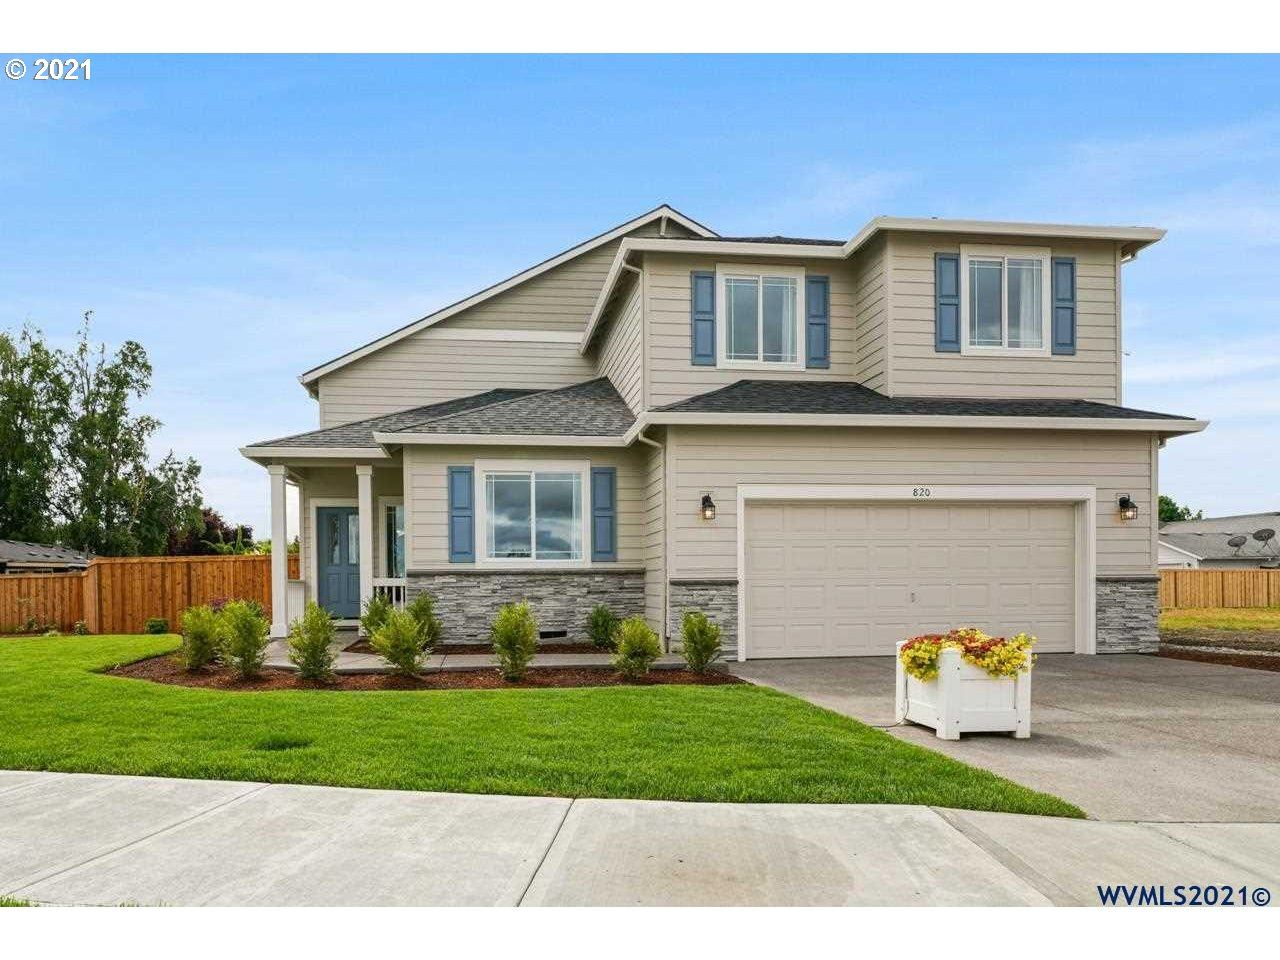 Photo of 980 Winfield ST, Gervais, OR 97026 (MLS # 21475213)